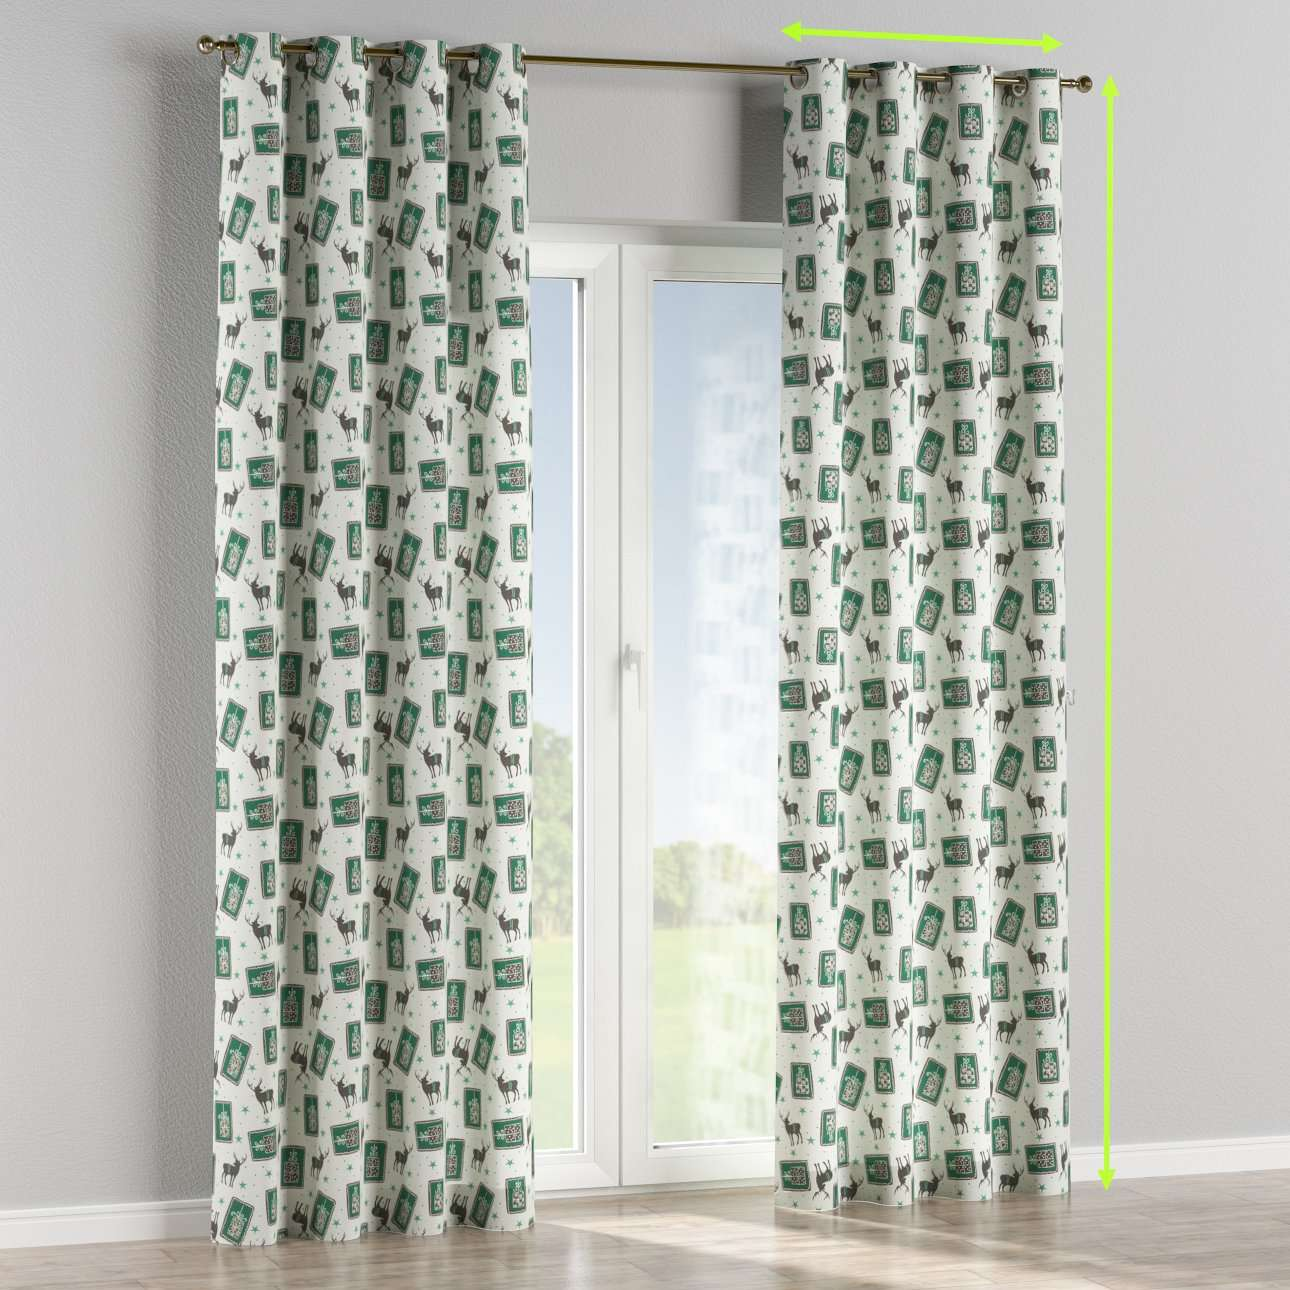 Eyelet curtains in collection Nordic, fabric: 630-13